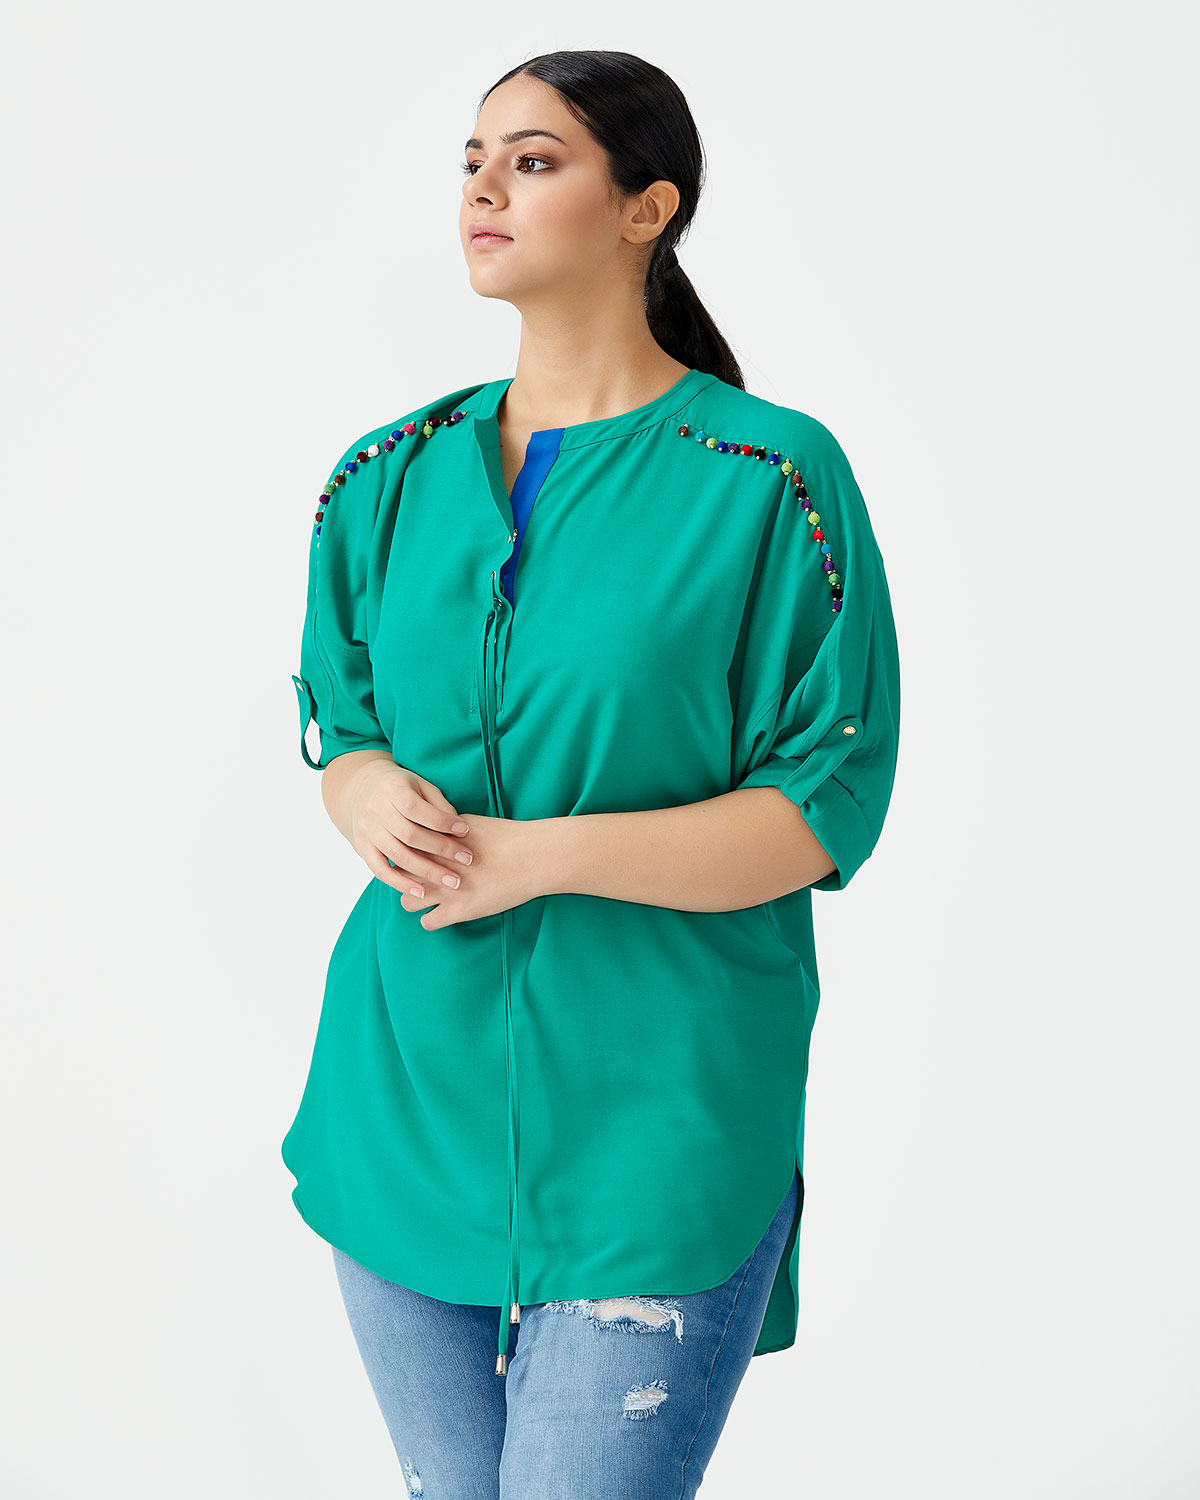 NEW - GALAXI LARGE SIZE TASSEL DETAILED ROUND COLLAR - GREEN